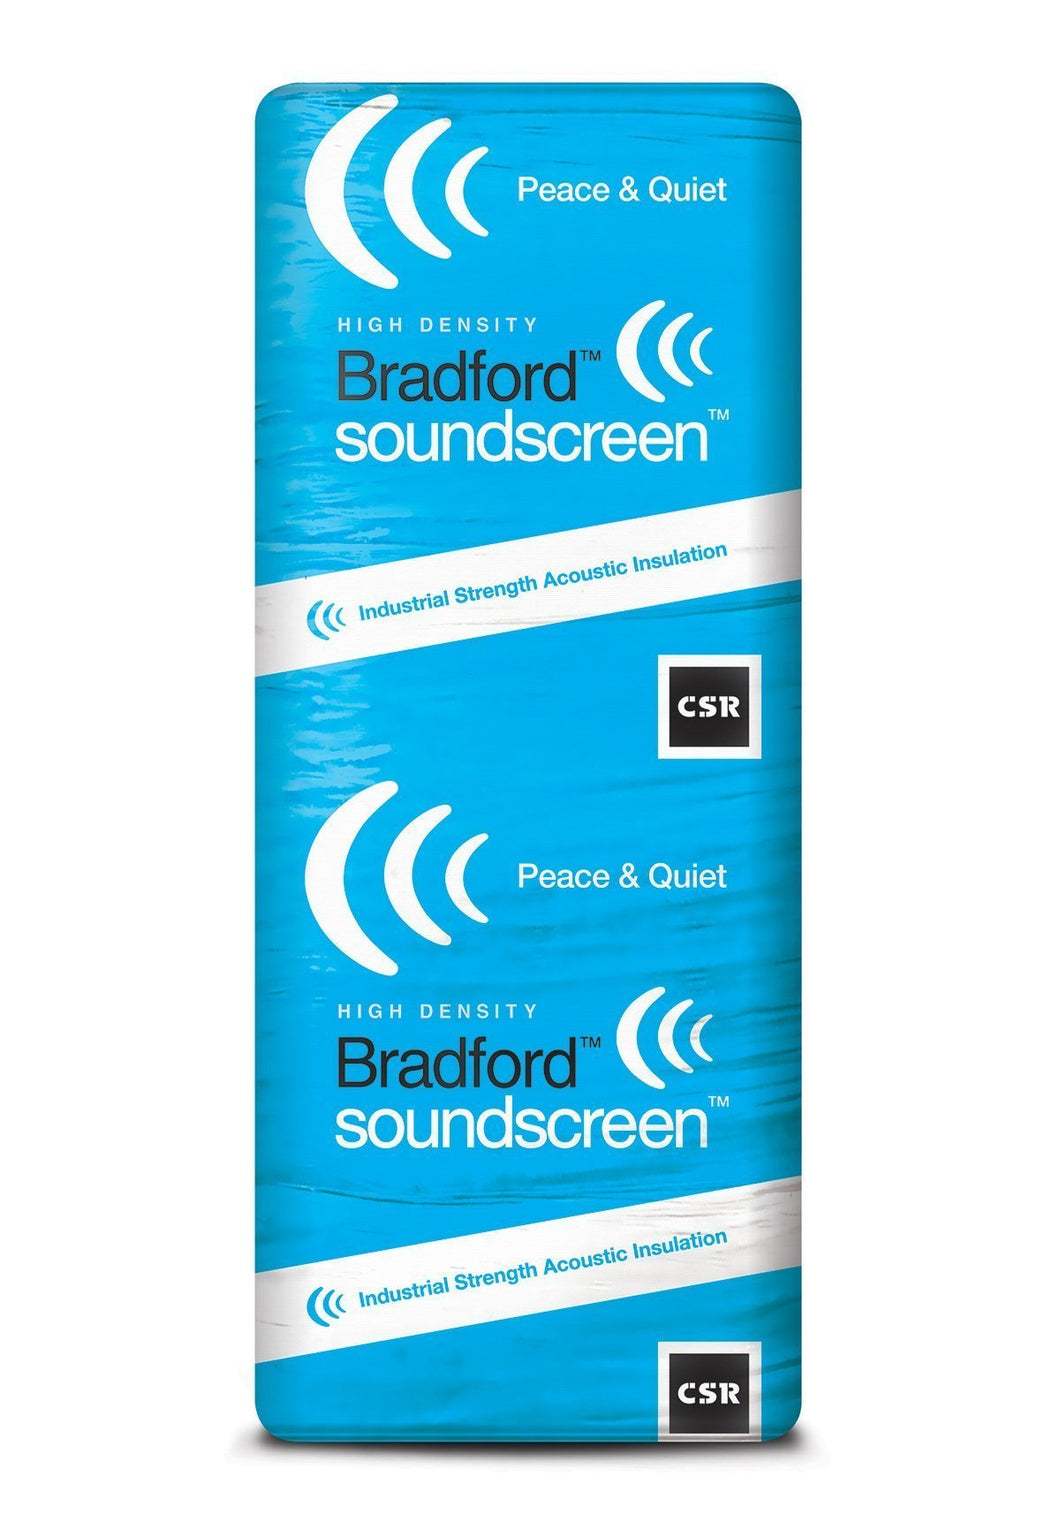 Bradford SoundScreen Acoustic Wall Insulation Batts - R3.1 - 1160 x 580mm - 4m²/pack - Patnicar Insulation